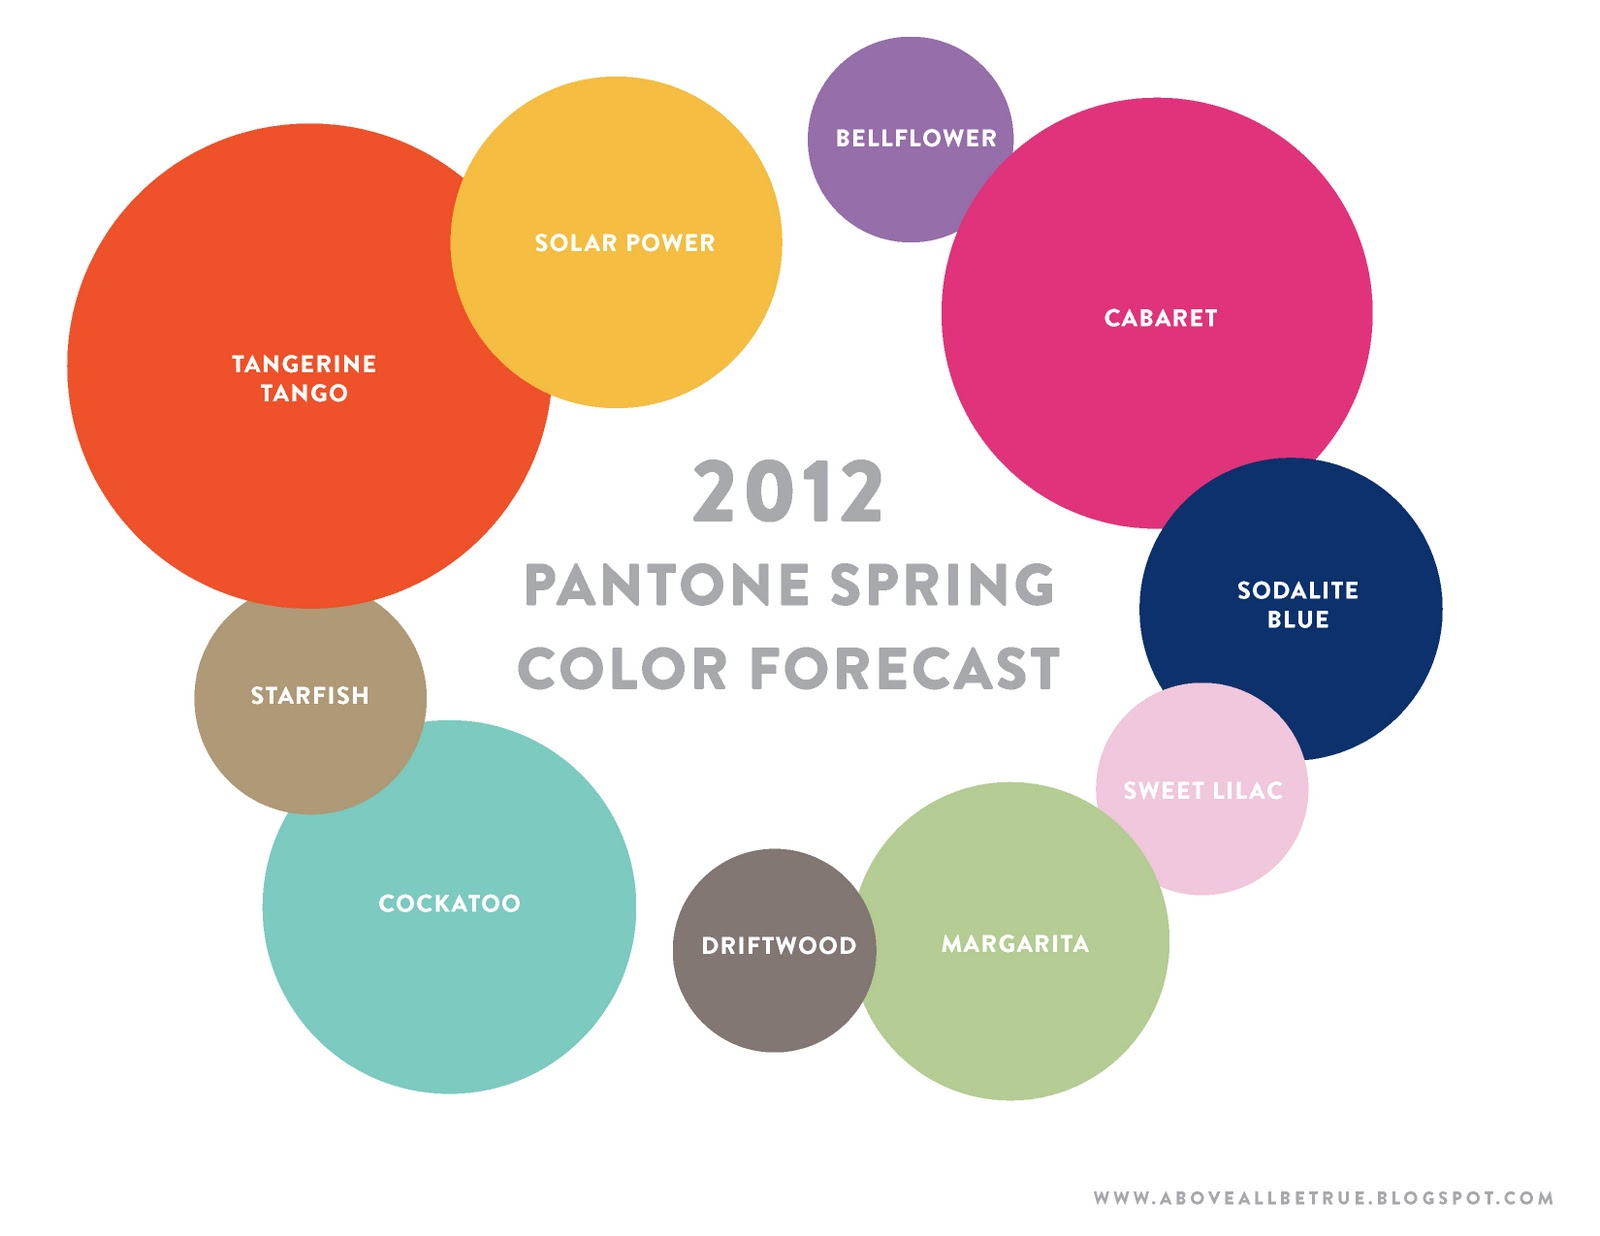 Be True 2012 Pantone Spring Color Forecast Revealed